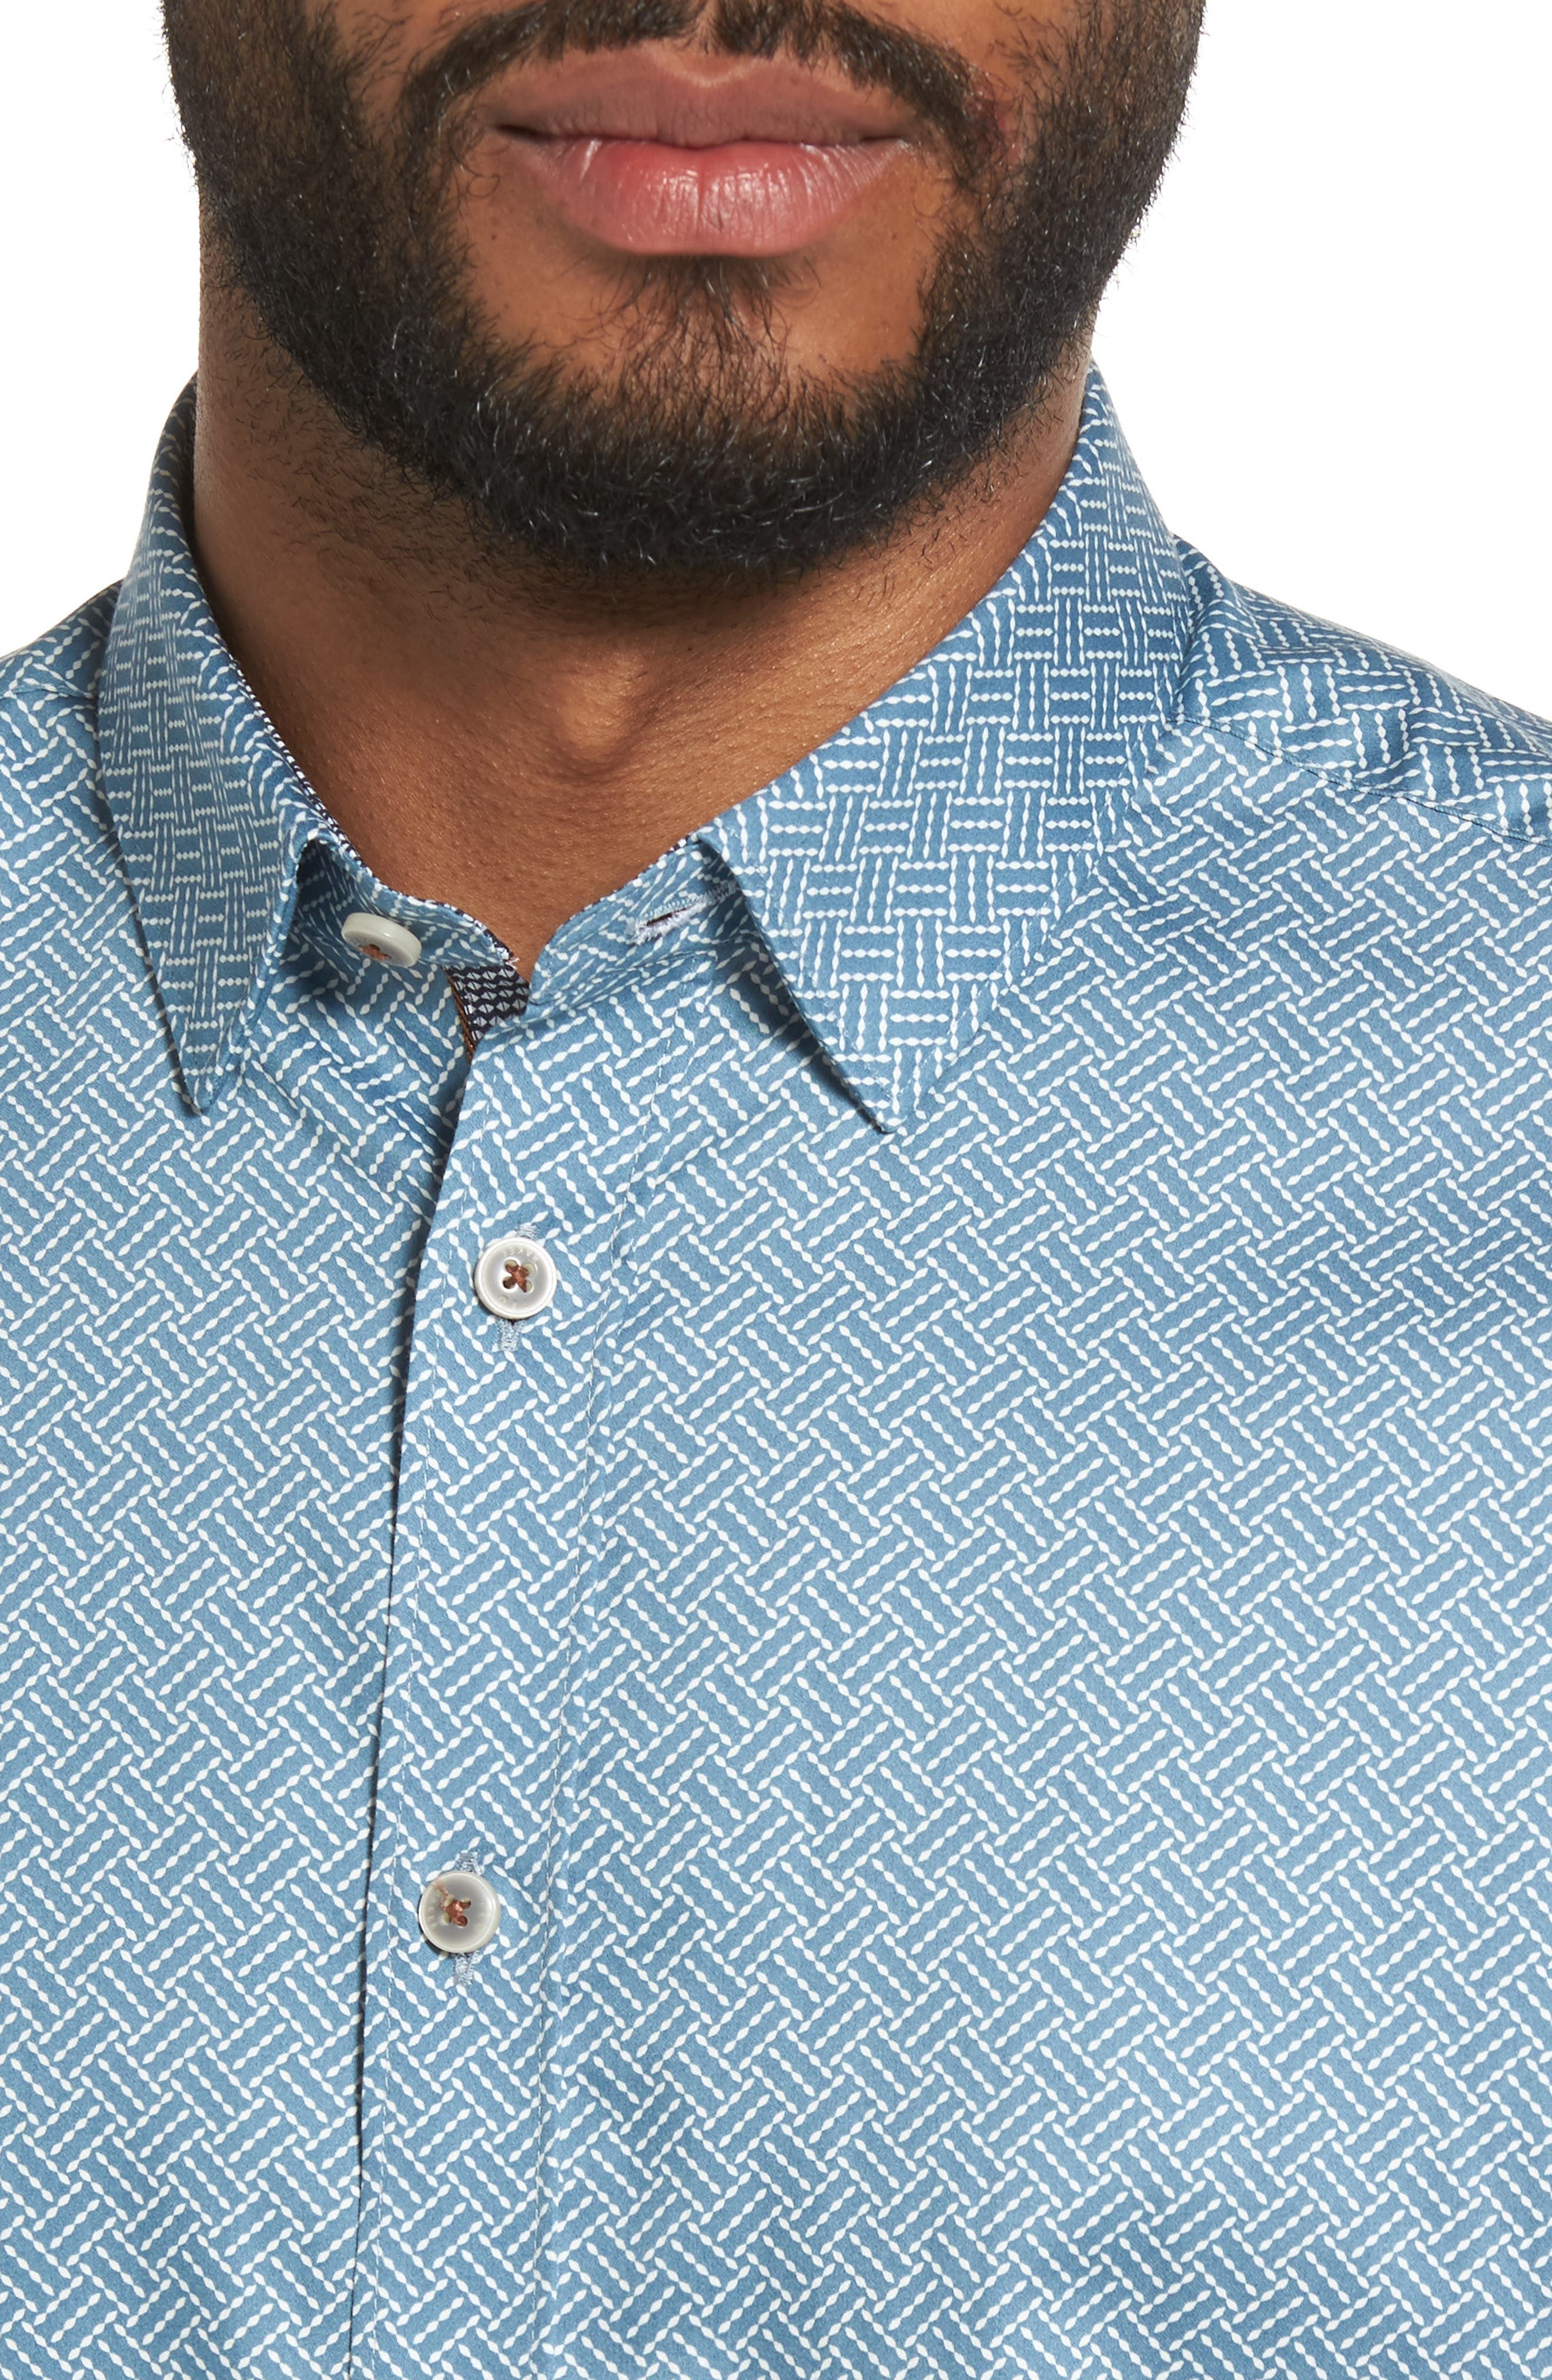 Alternate Image 4  - Ted Baker London Lashore Basketweave Print Woven Shirt